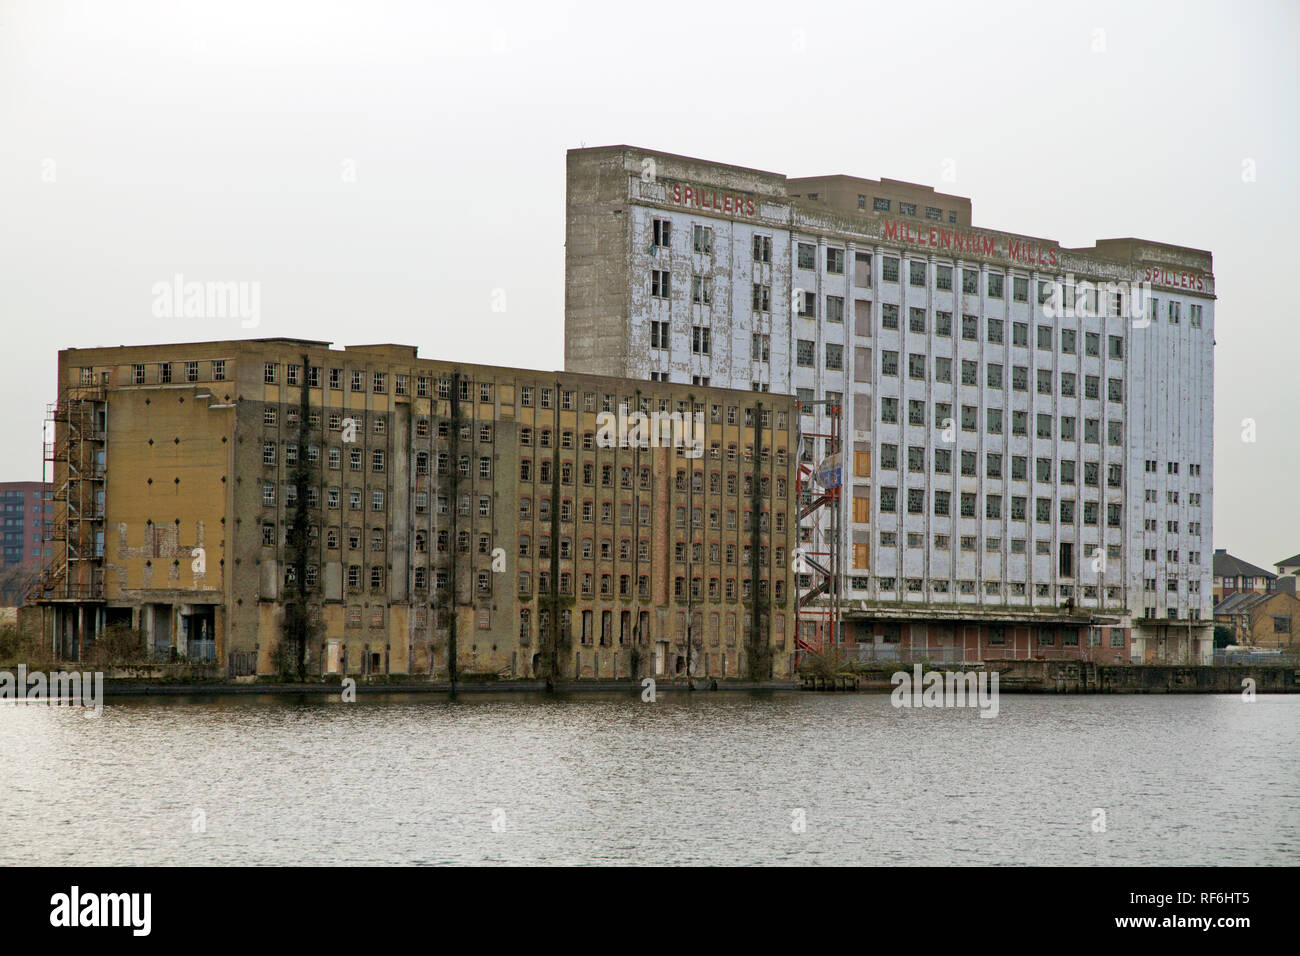 The former Rank Hovis Premier Mill and Millennium Mills derelict flour mill buildings in West Silvertown on the south side of the Royal Victoria Dock  - Stock Image